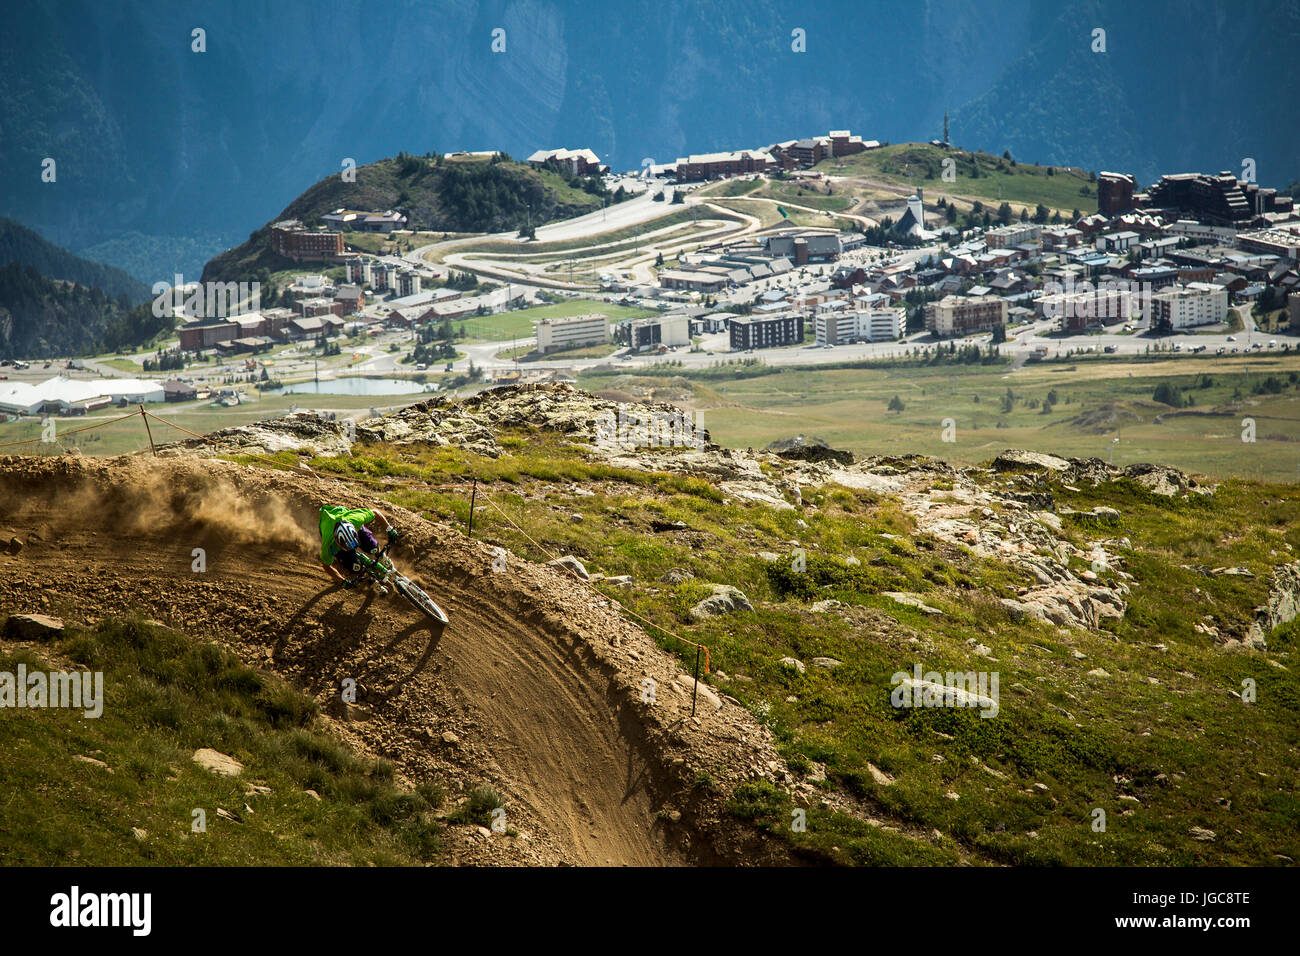 A mountain biker on a dusty Alpine trail, with ski village in background - Stock Image